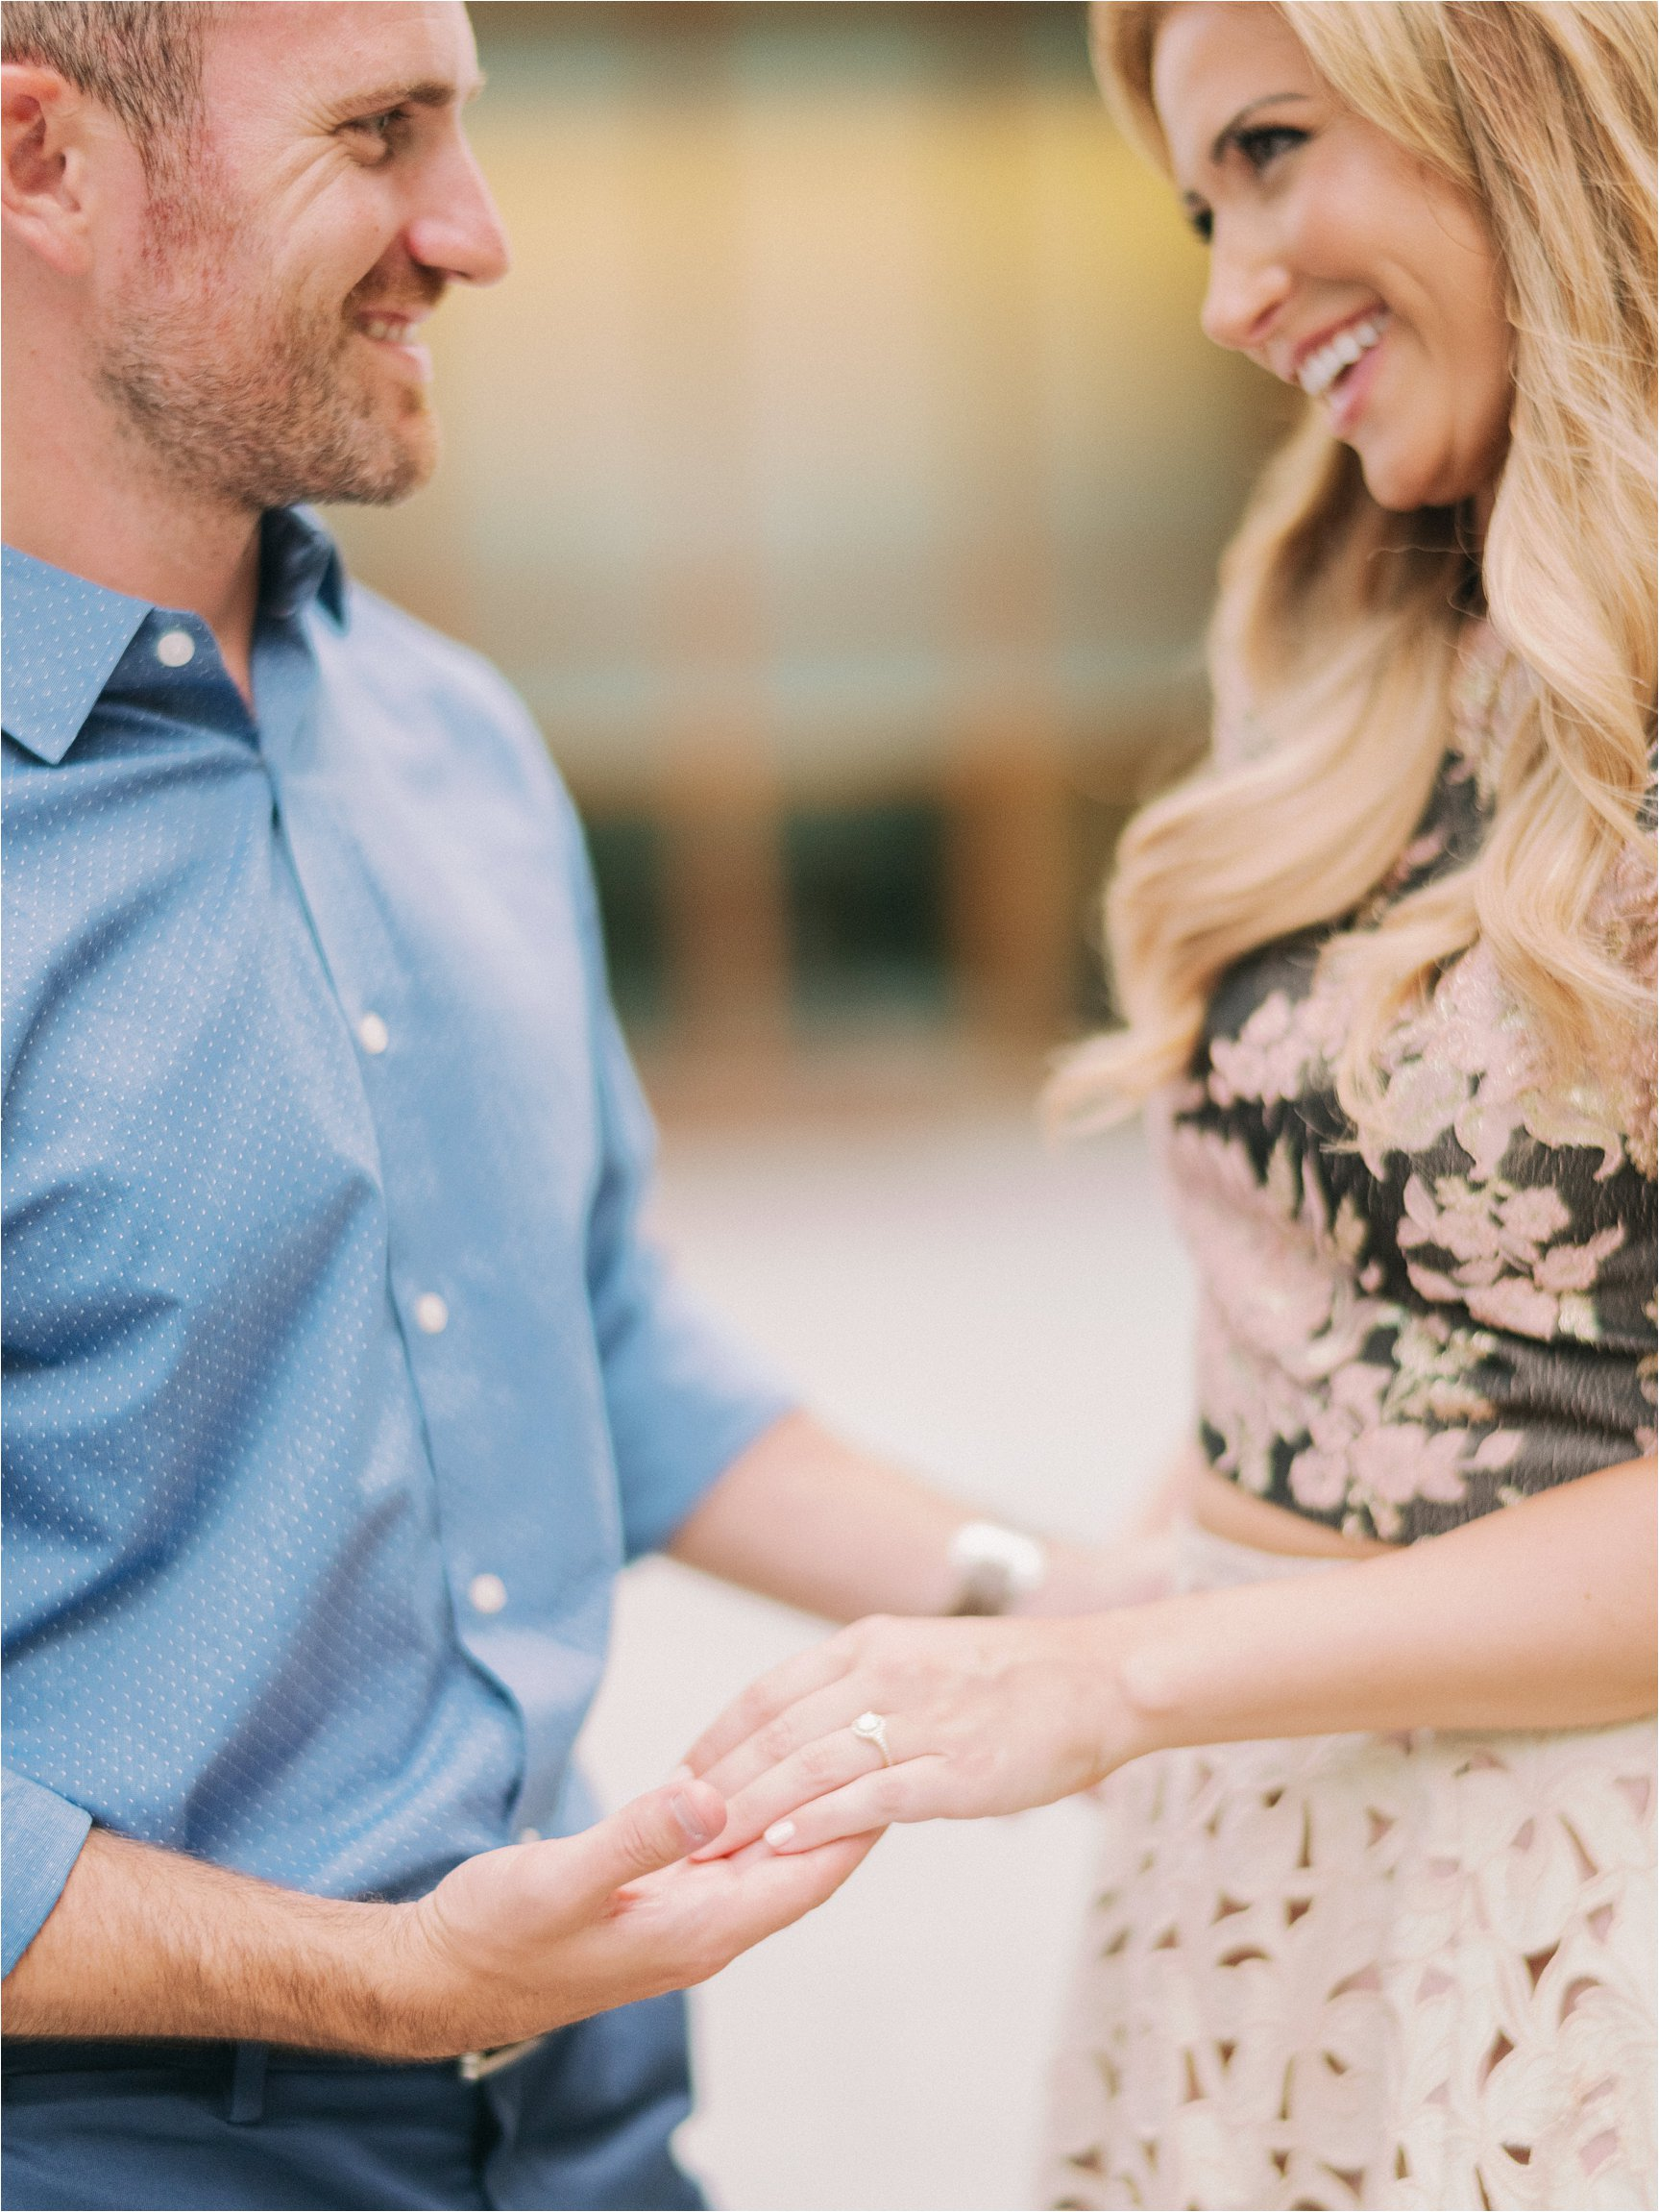 Philly_Engagement_Shoot194.JPG